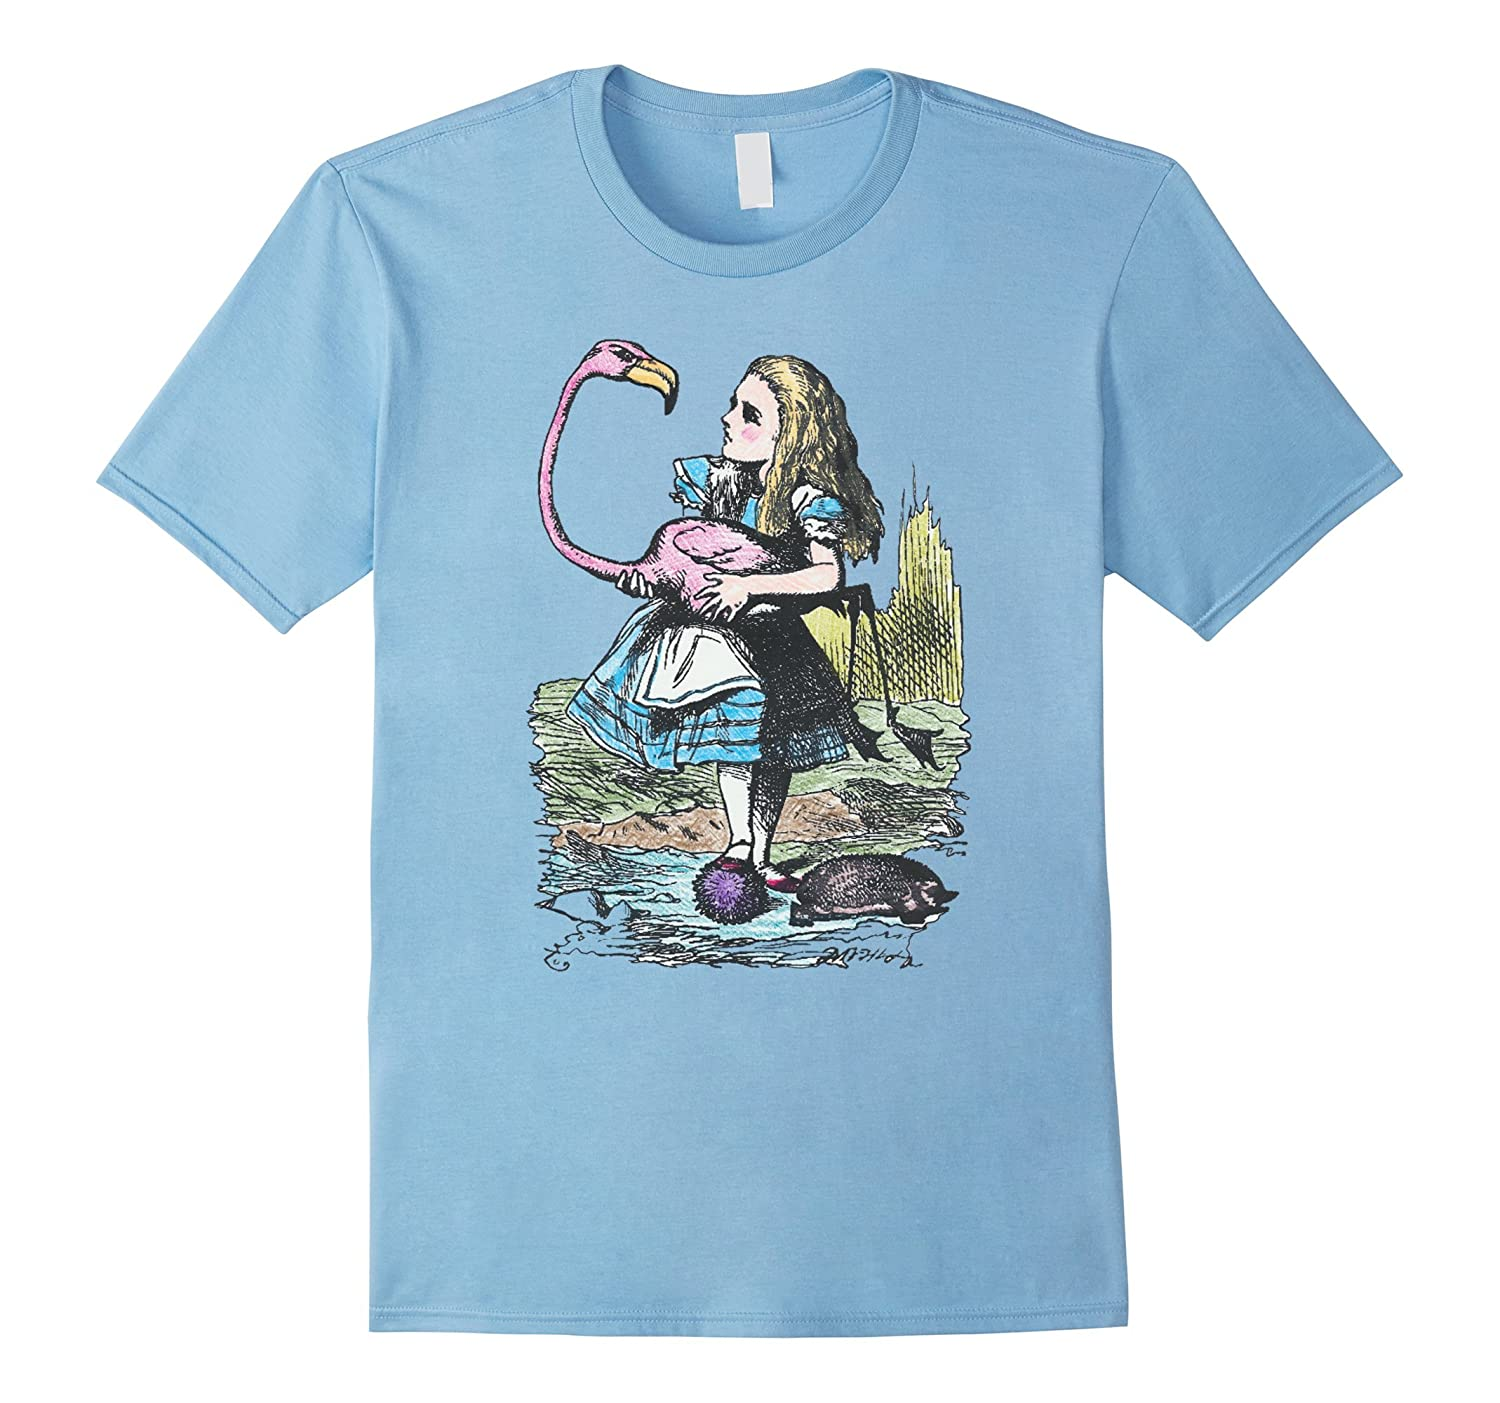 Alice in Wonderland with Flamingo and Hedgehog Shirt A27-CL